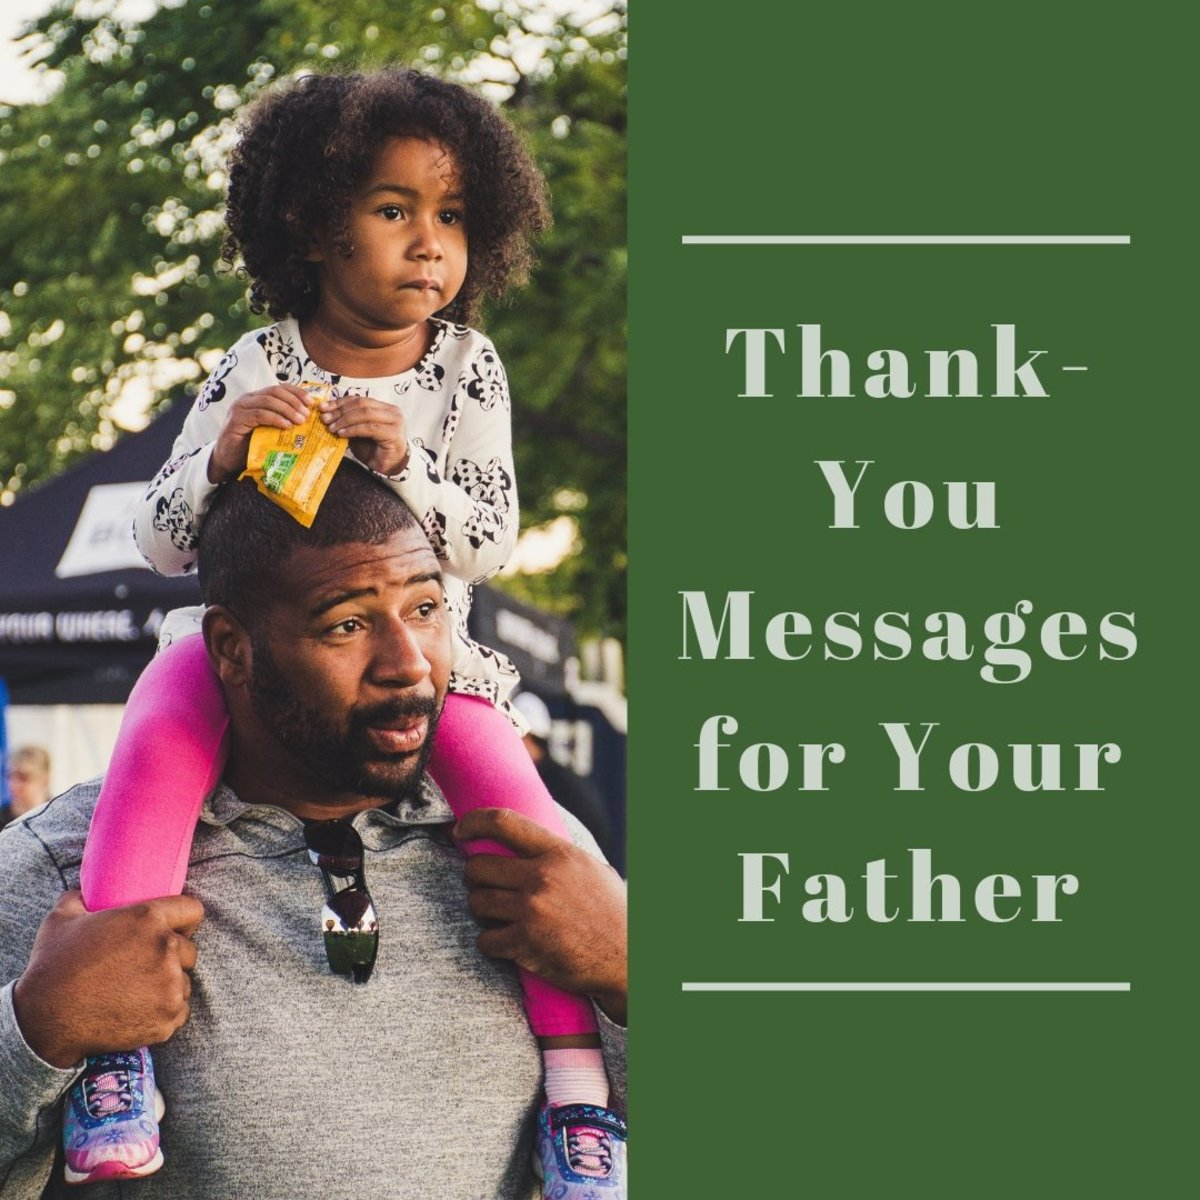 Do you want to thank your father for being an awesome dad? Read on to find inspiring poems and messages to write in a thank-you card for any occasion.